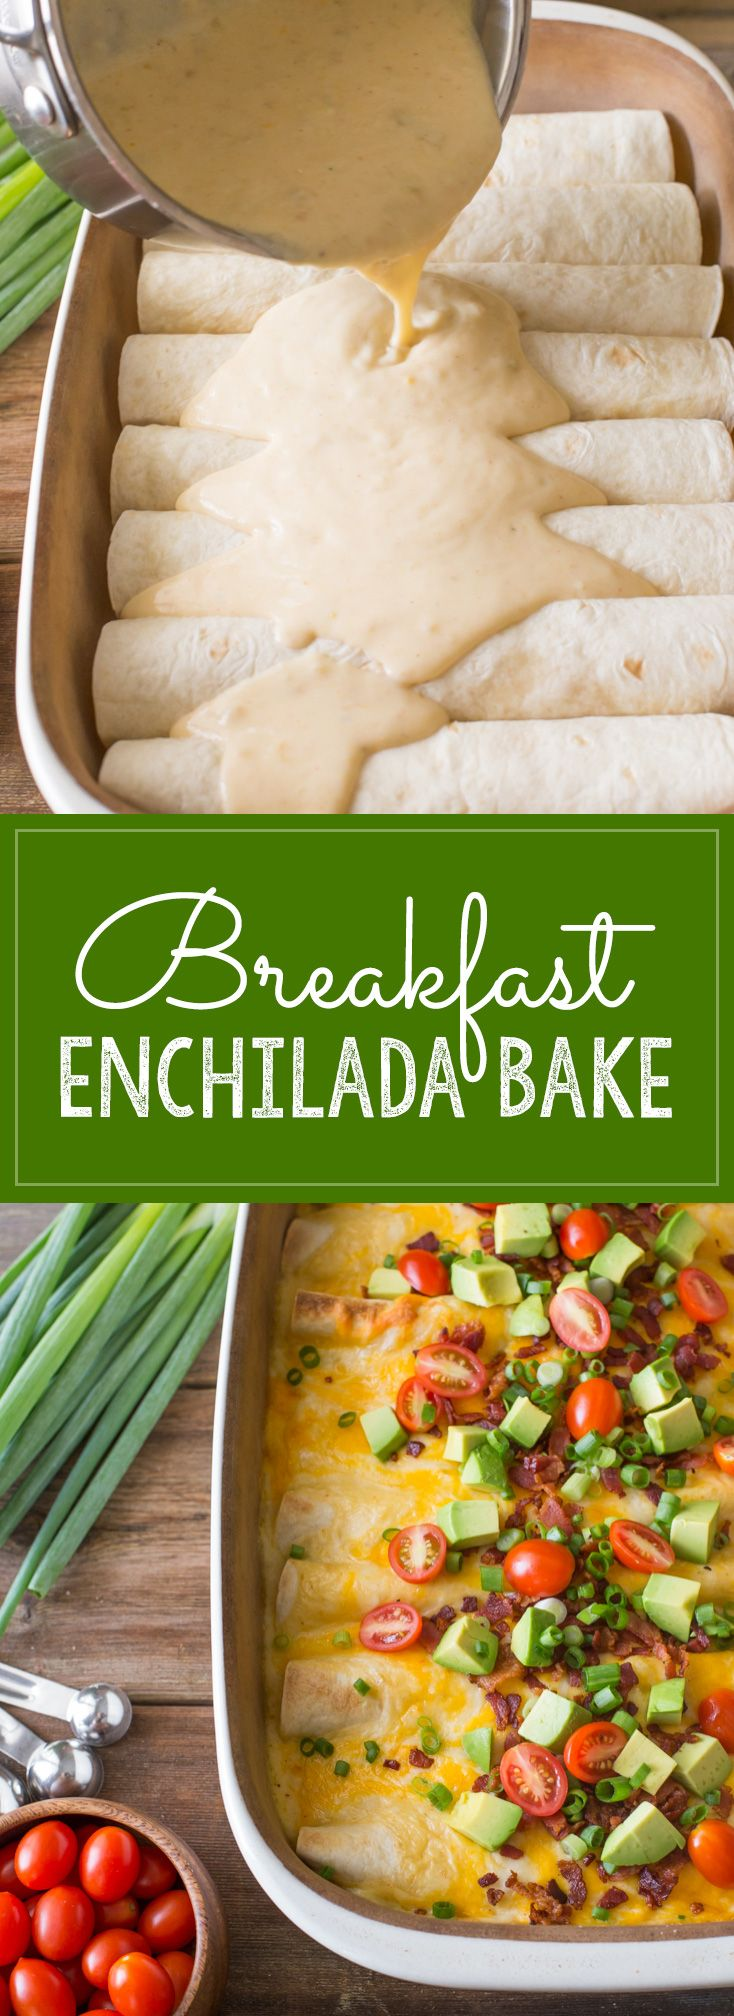 A super hearty, ultimate breakfast enchilada bake filled with eggs and cheese…